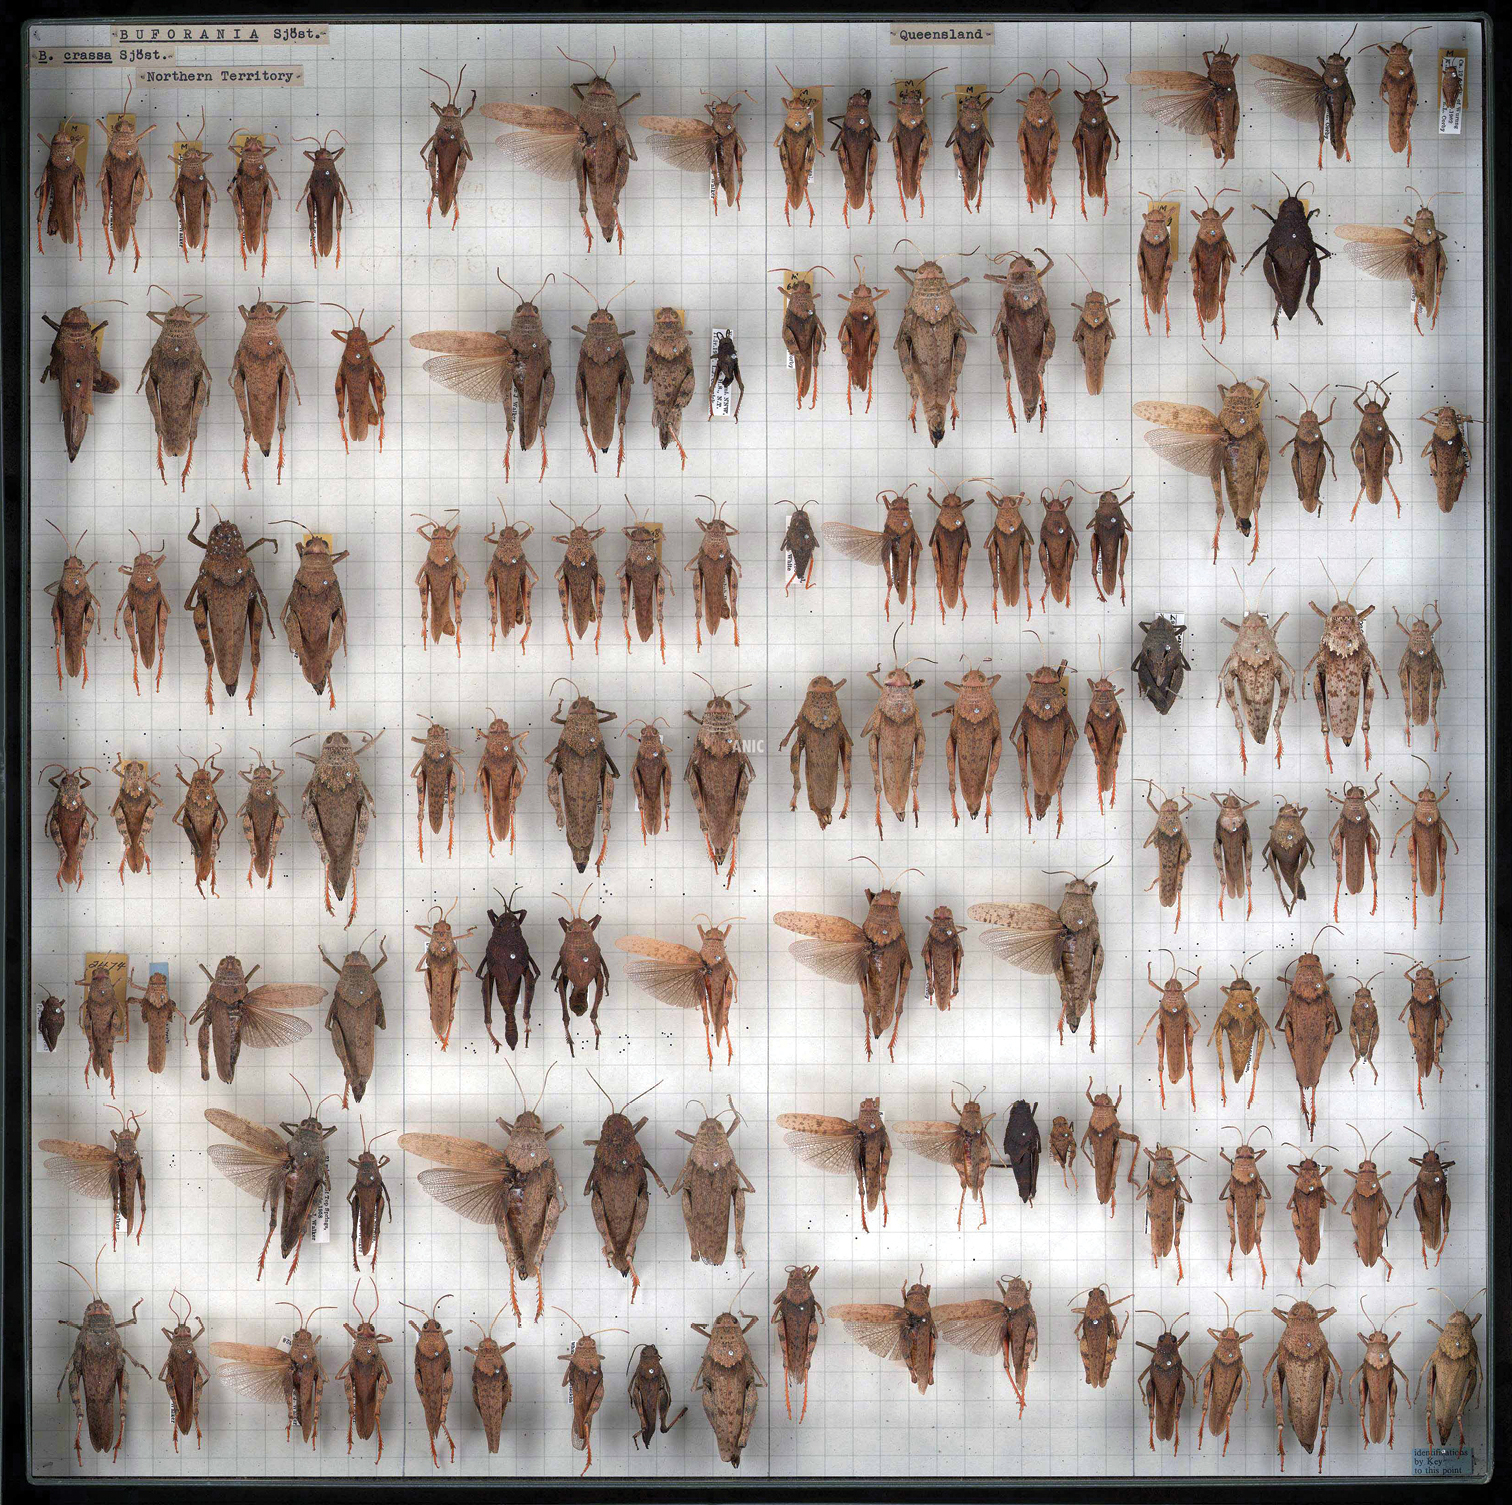 Conservation and restoration of insect specimens - Wikipedia